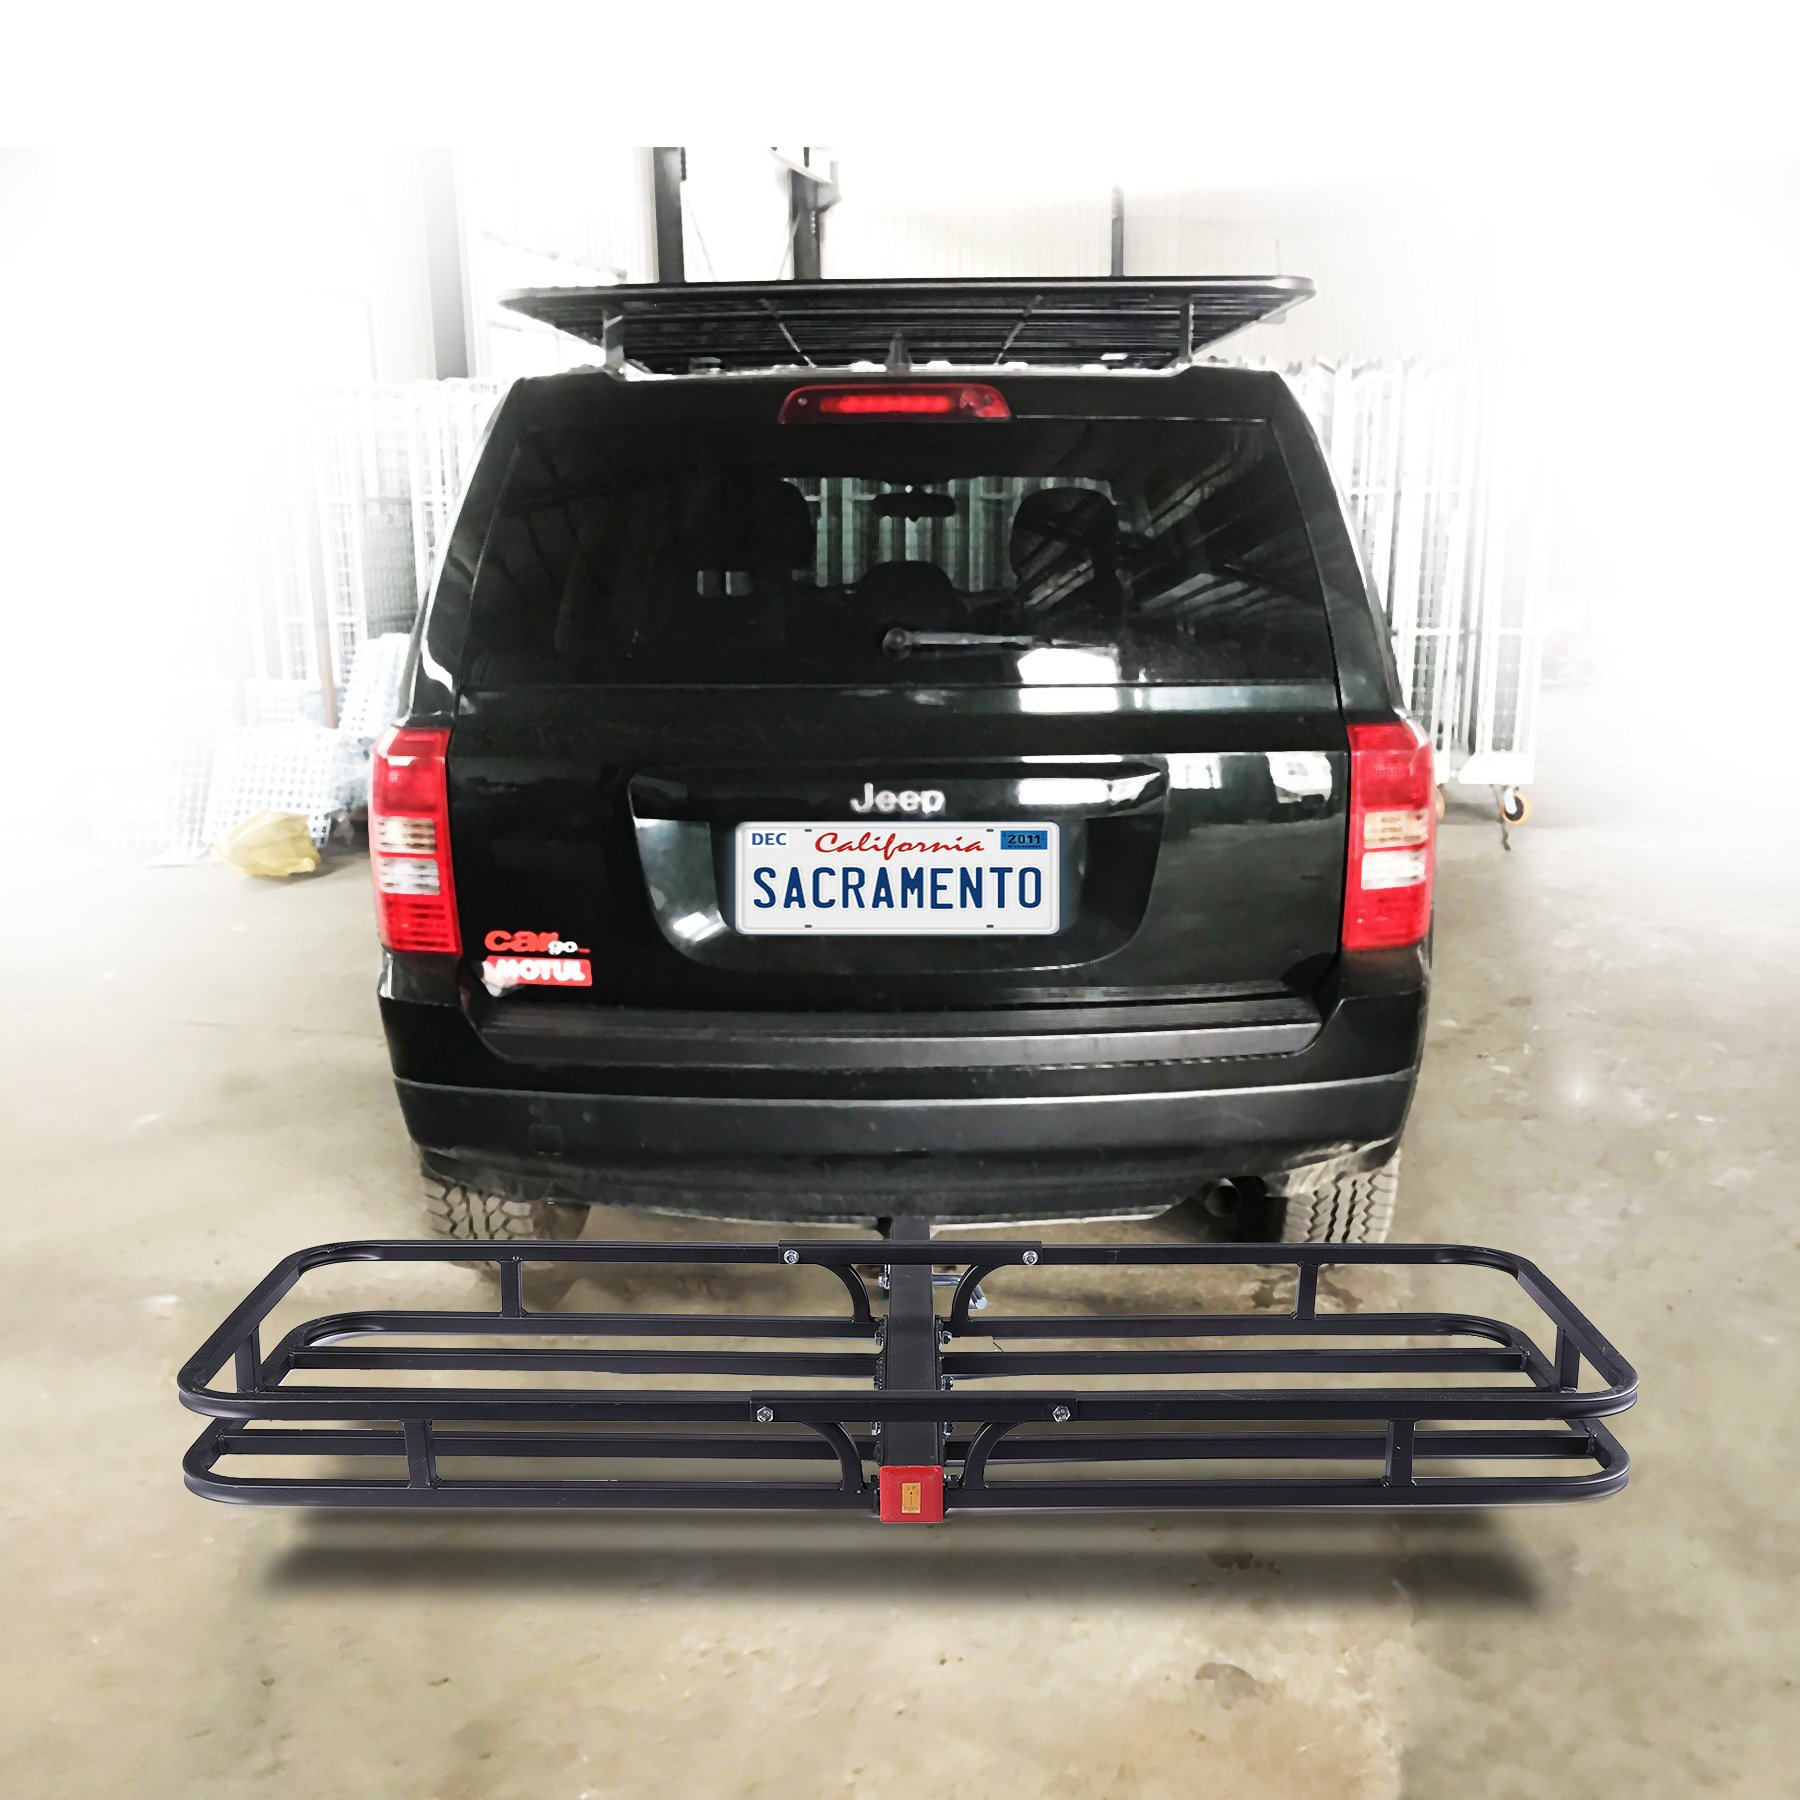 OrionMotorTech Hitch Mount Steel Cargo Carrier Luggage Basket, Fits 2'' Receiver Hitch Hauler (Max. Load Capacity: 500 lb.)